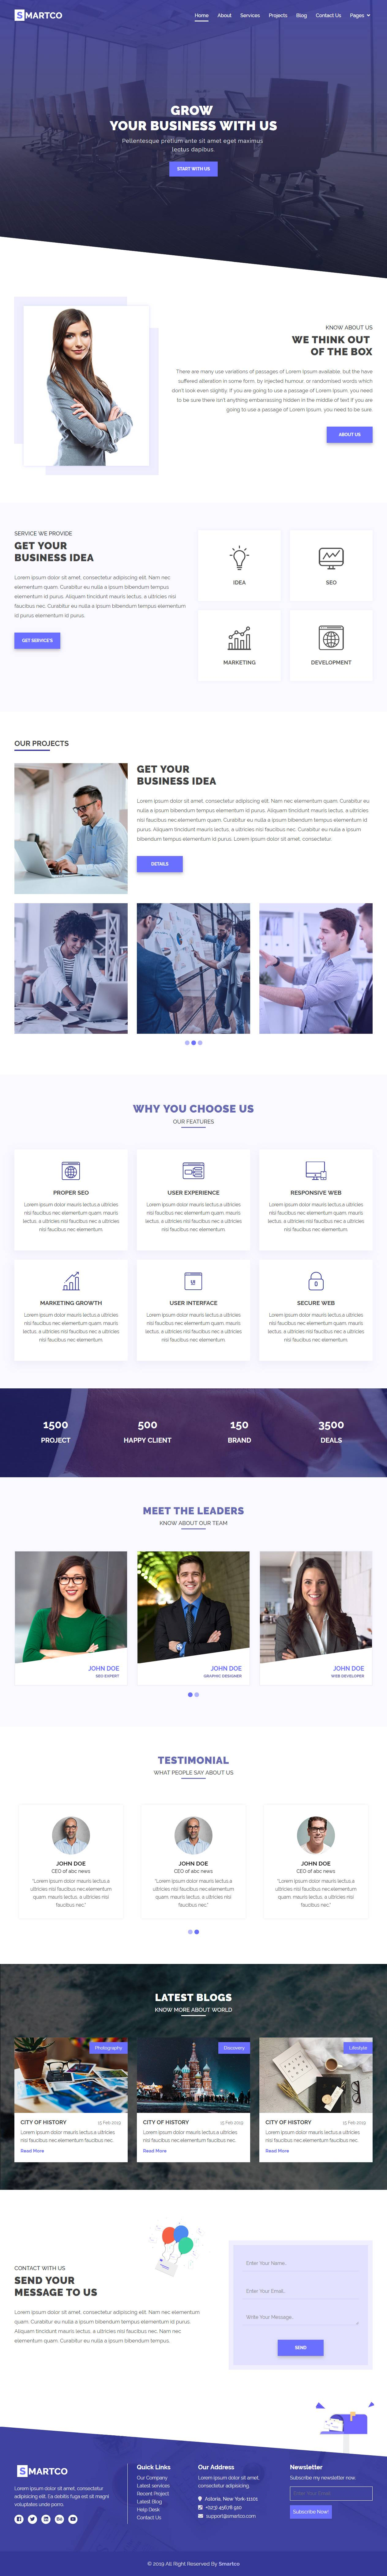 Html5 Responsive Templates One Page